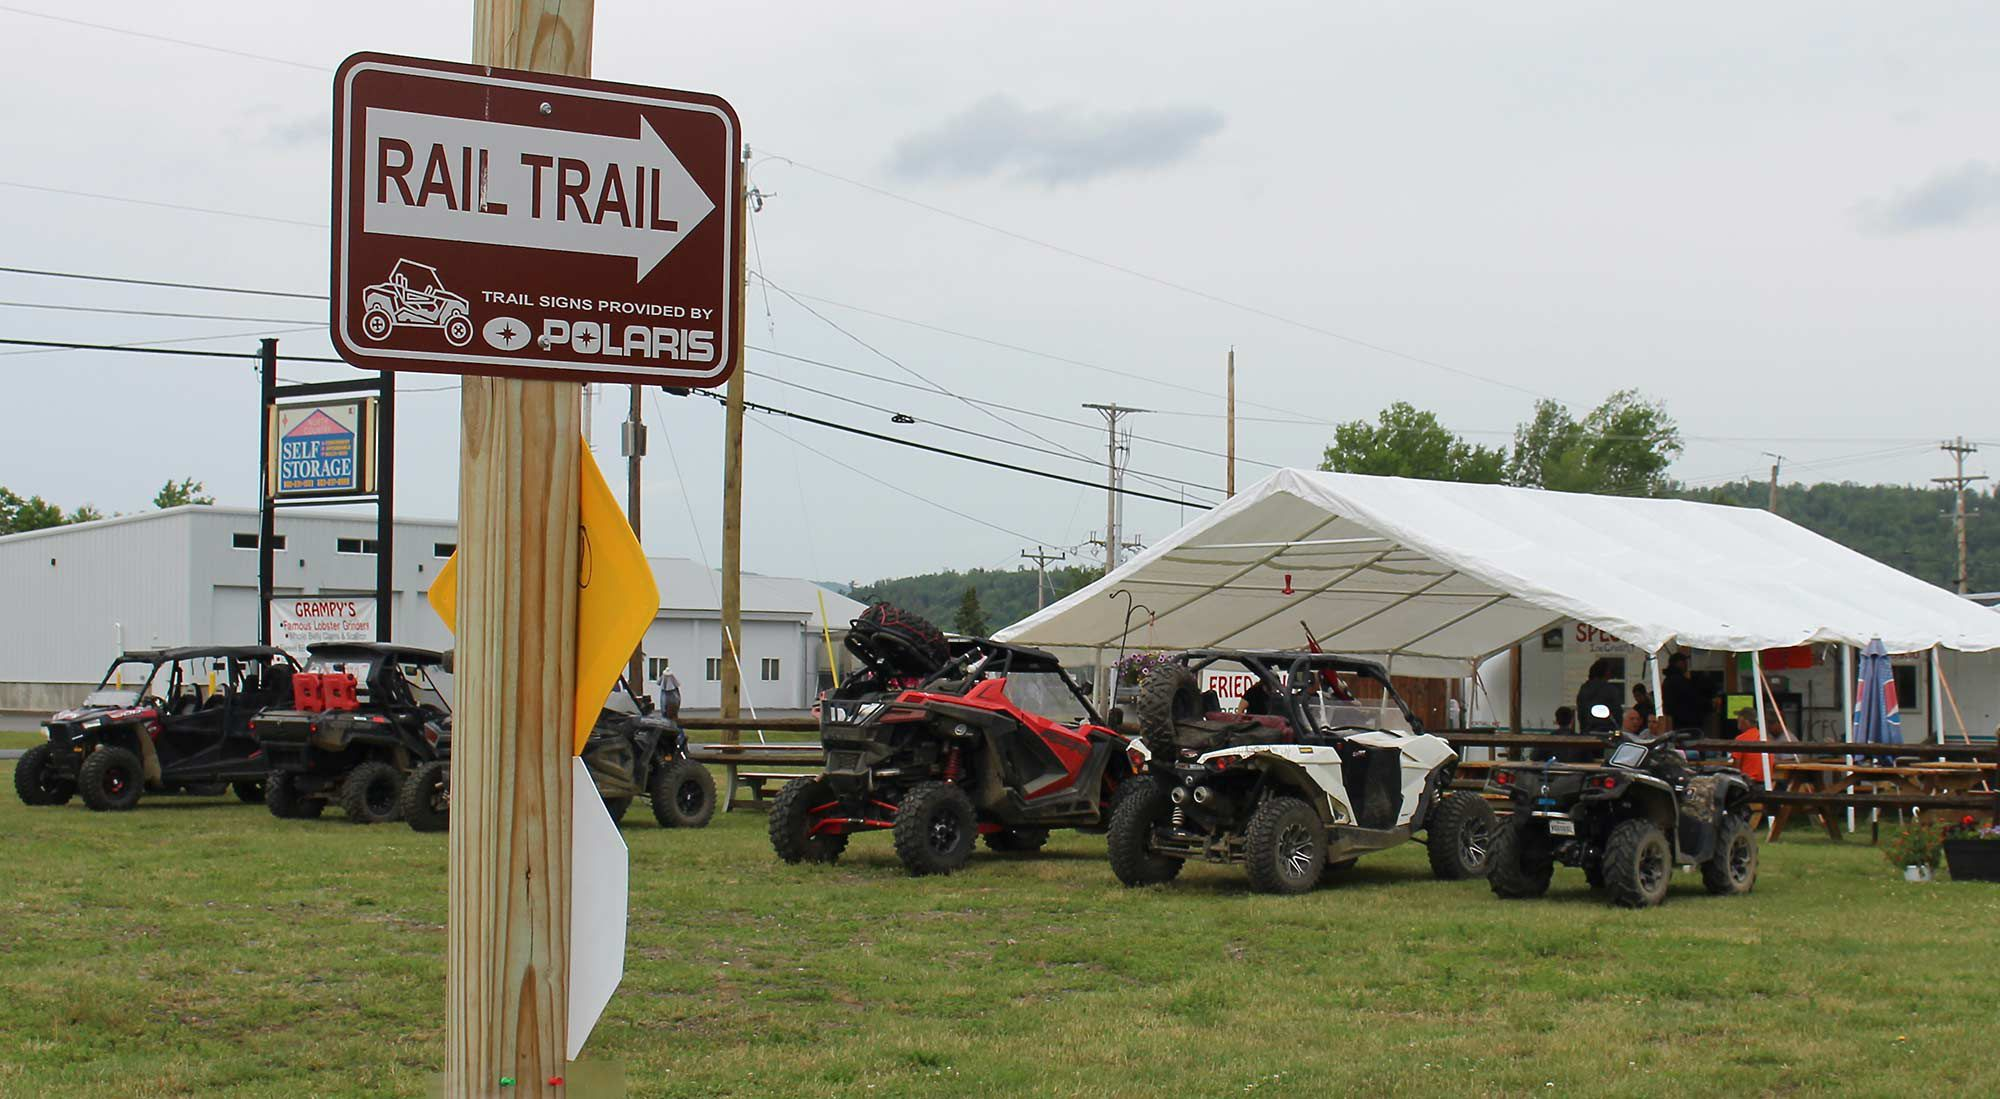 Lunch in Colebrook. Ride off the trail, grab a bite, get back on the trail.